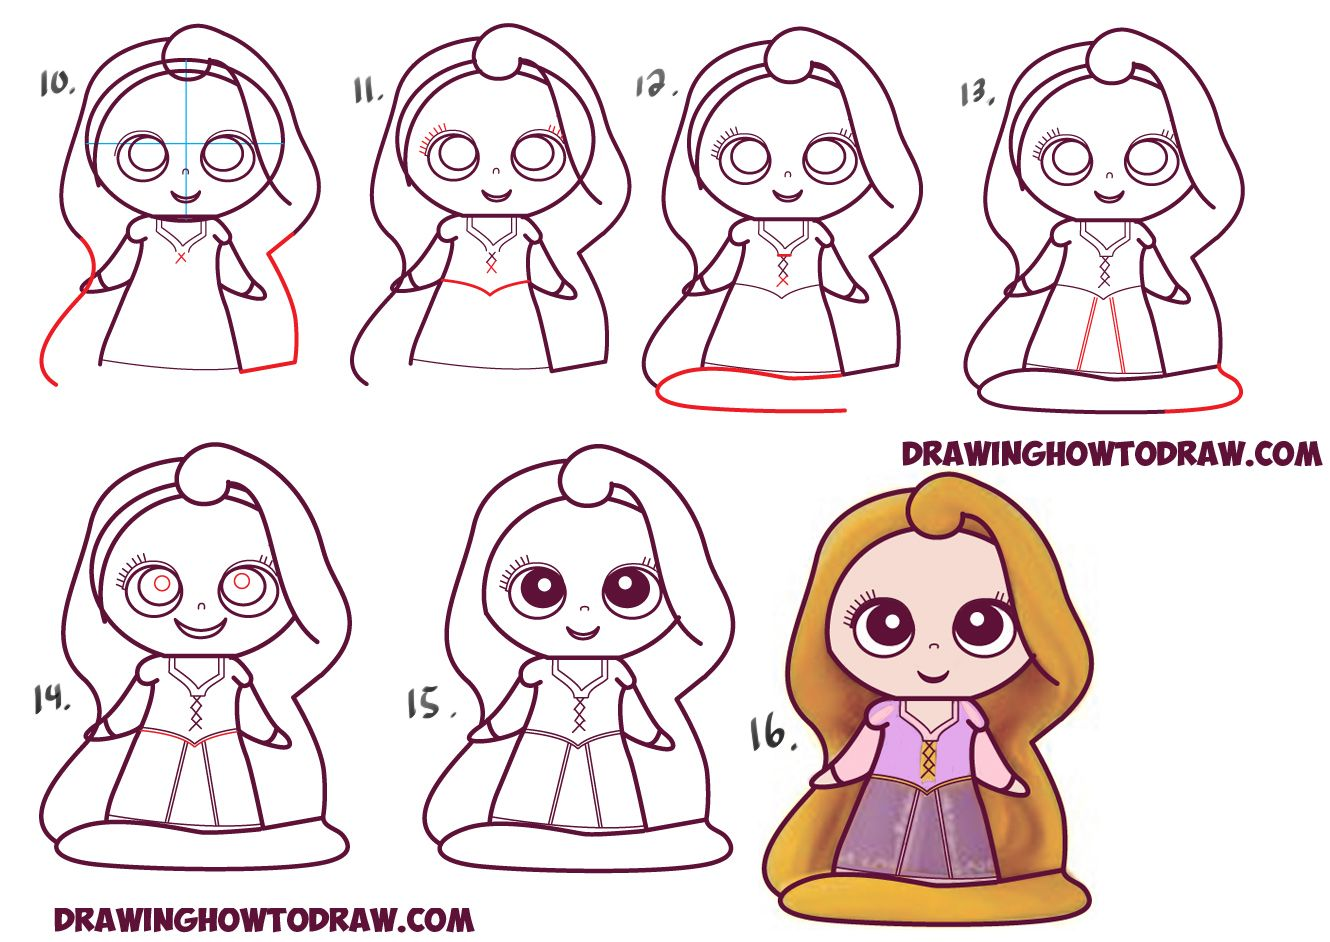 How to draw princess jasmine from aladdin printable step by step - Learn How To Draw Kawaii Chibi Rapunzel From Disney S Tangled In Simple Steps Drawing Lesson